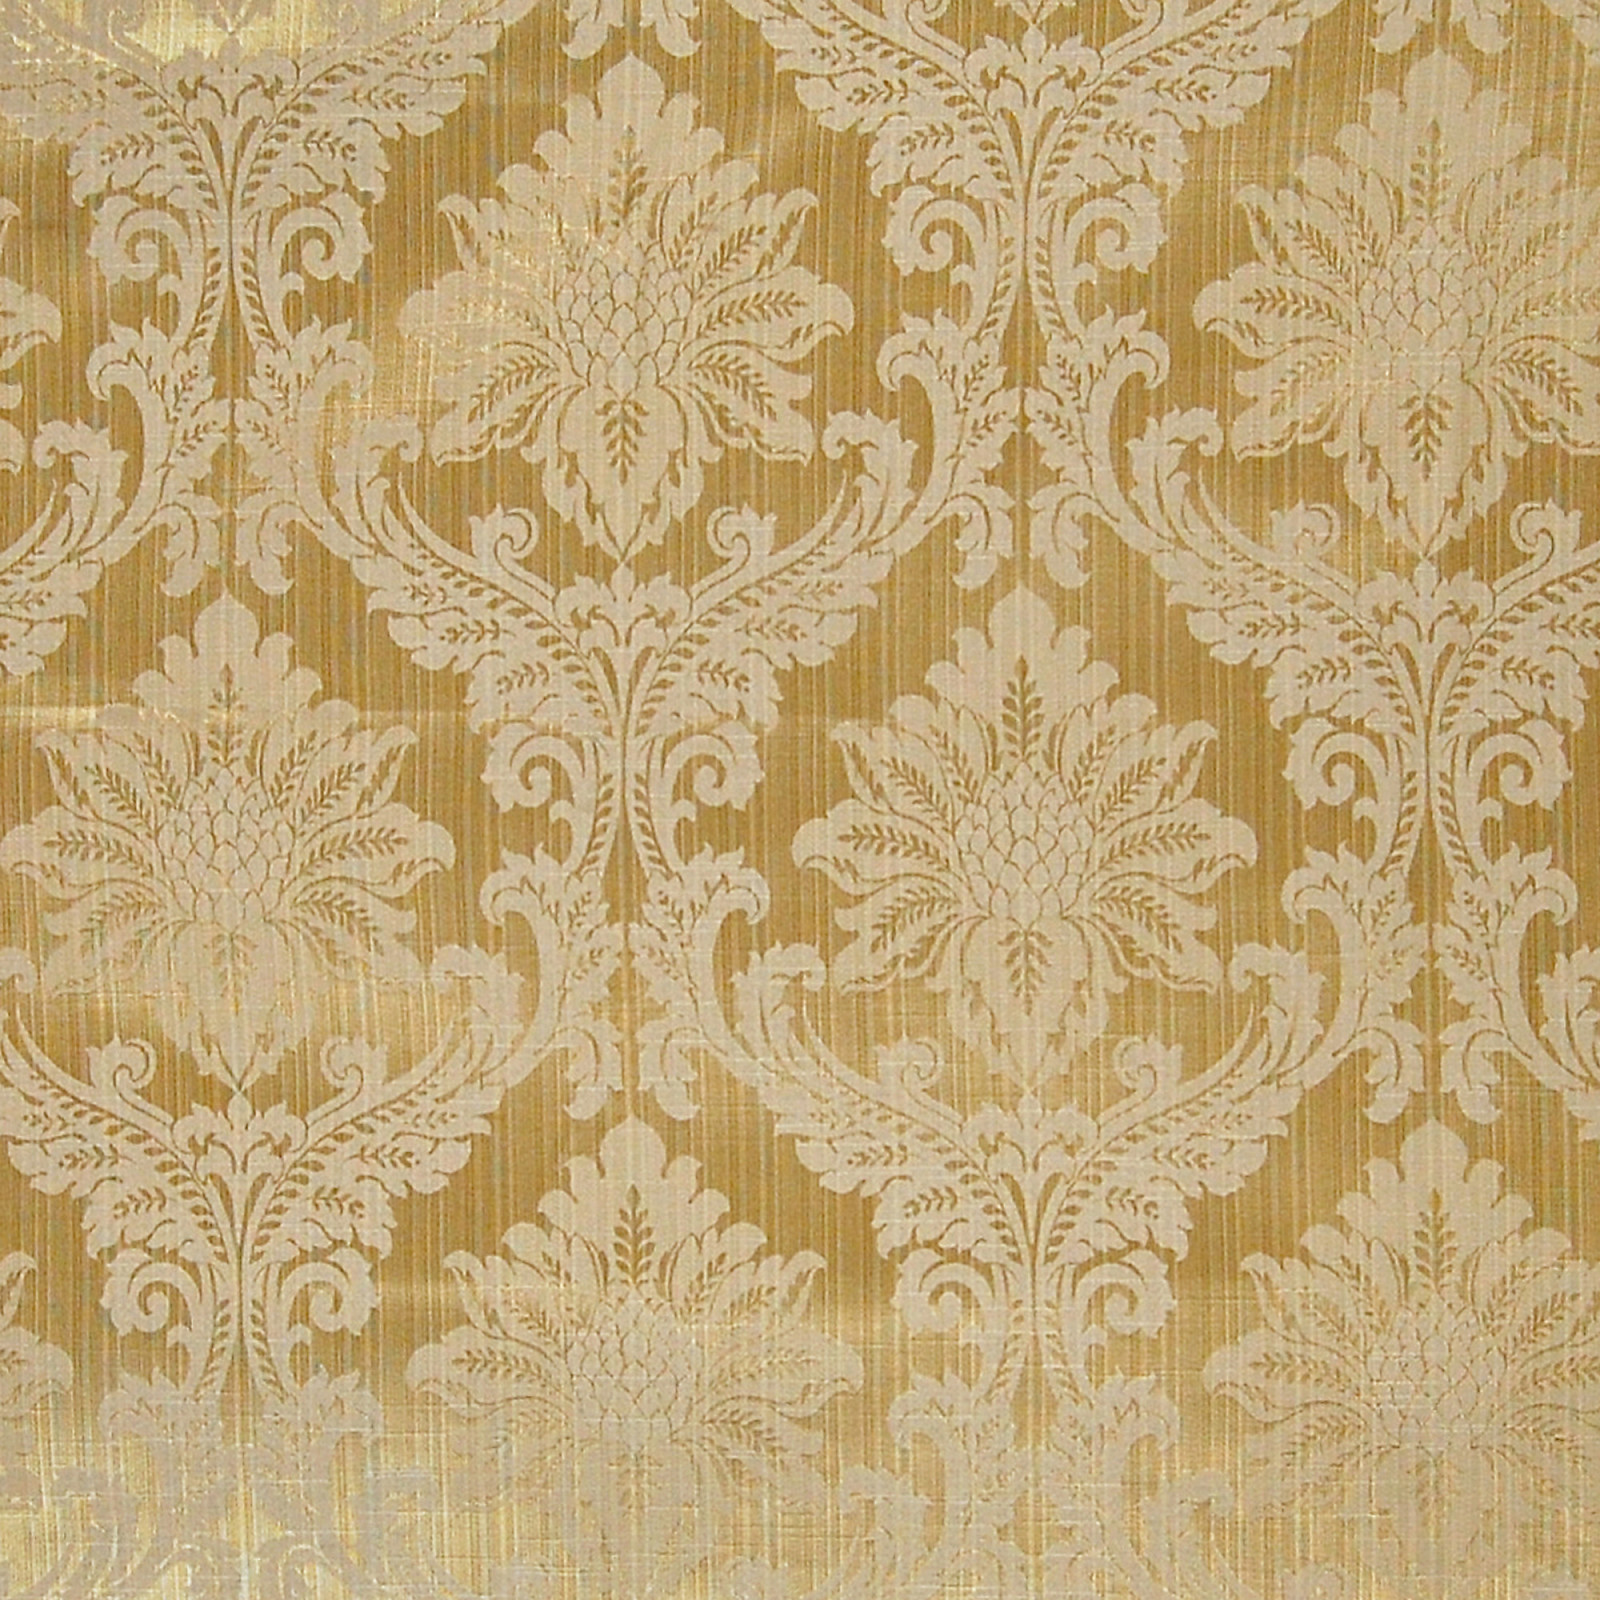 Gold Gold Damask Cotton Upholstery Fabric